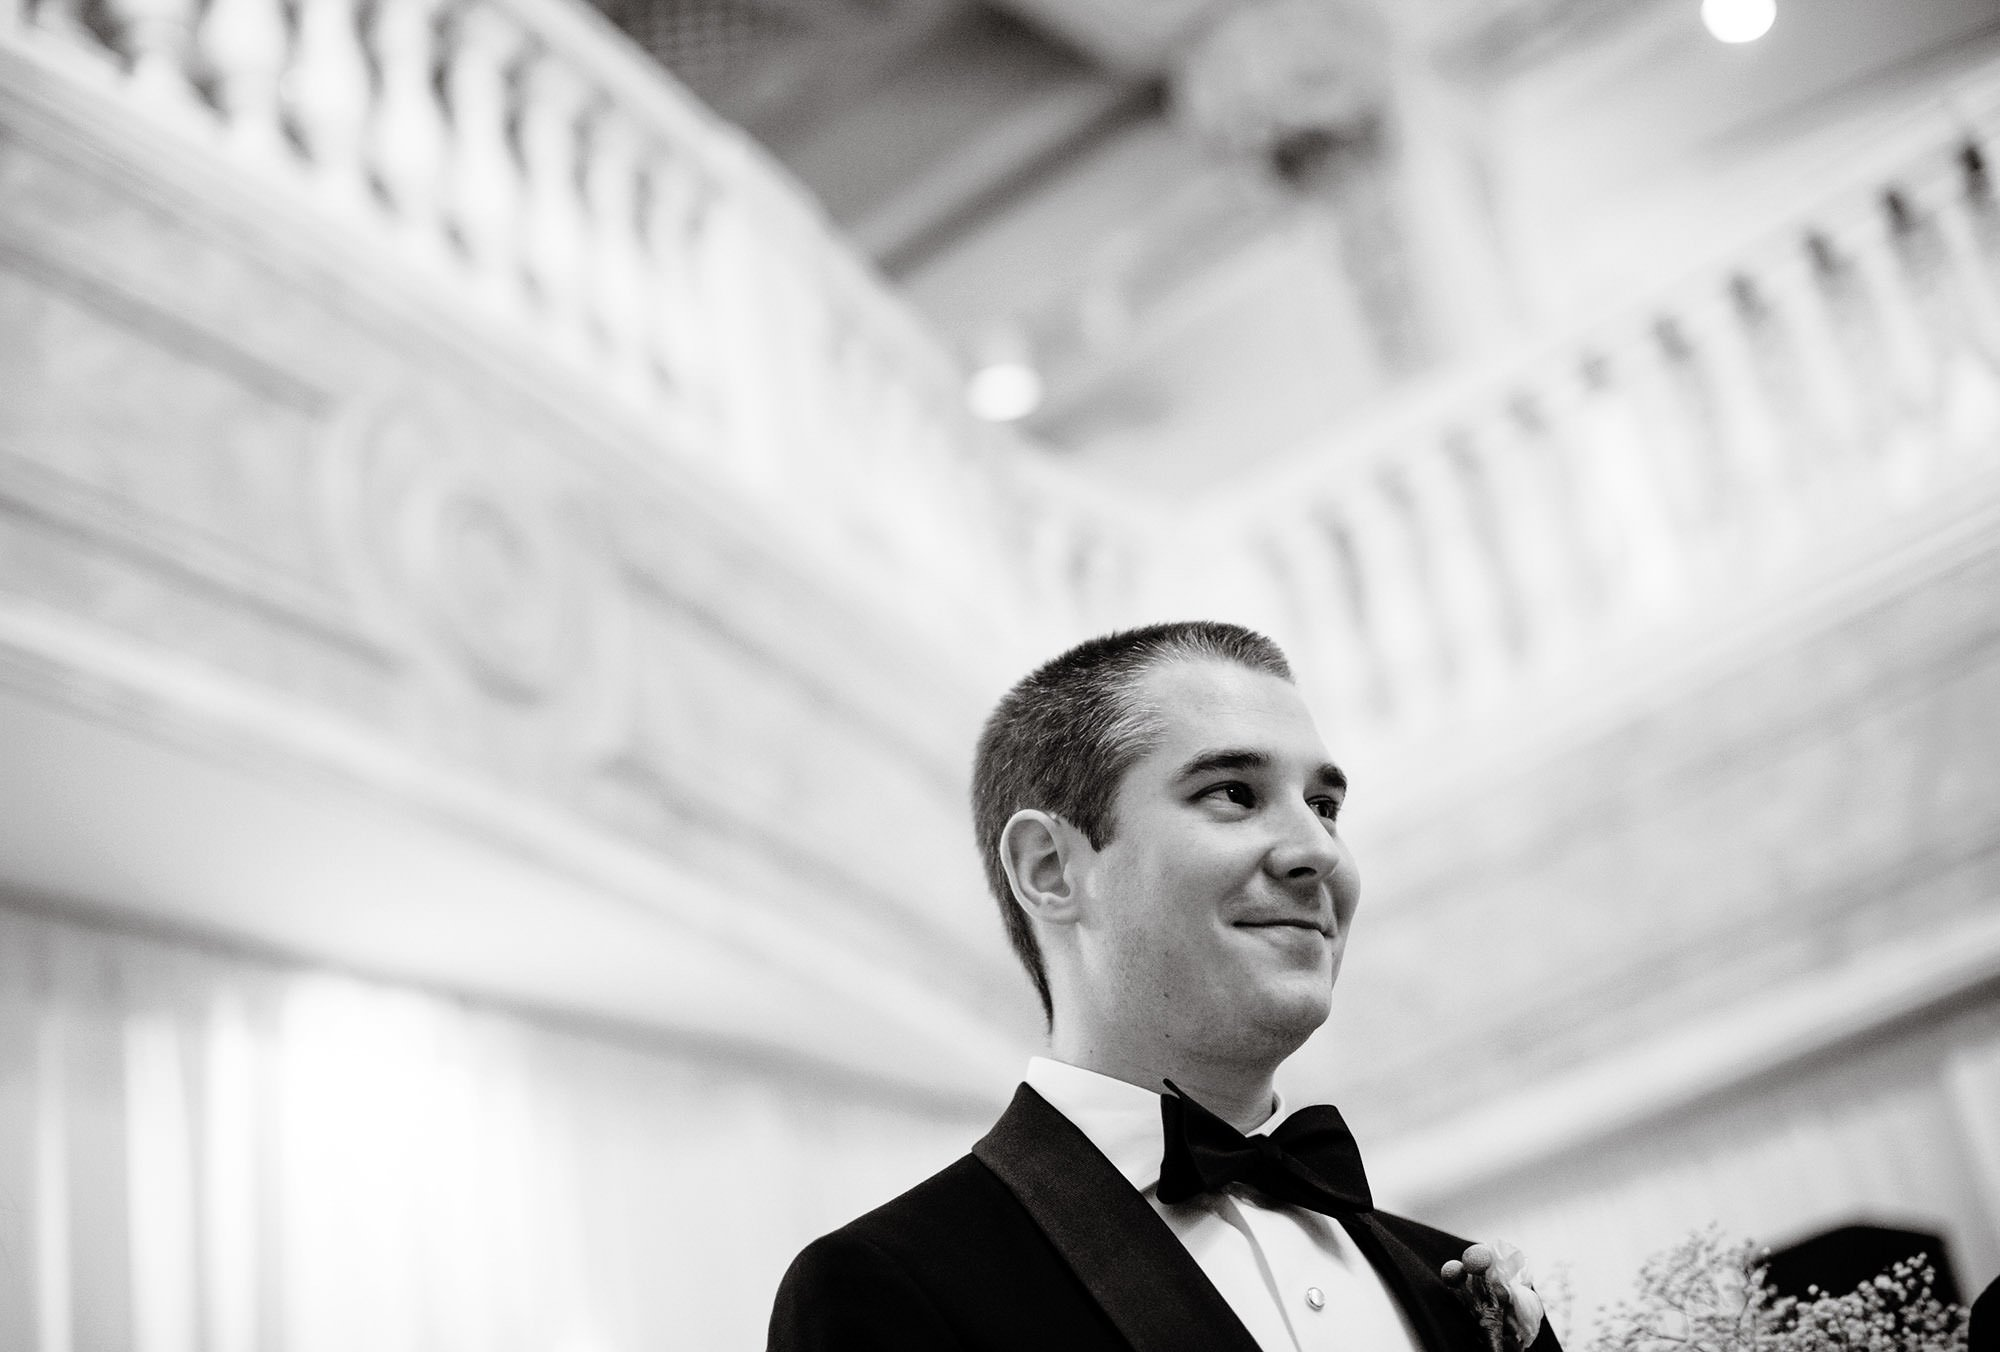 The groom watches as his bride walks down the aisle during the NMWA wedding ceremony.